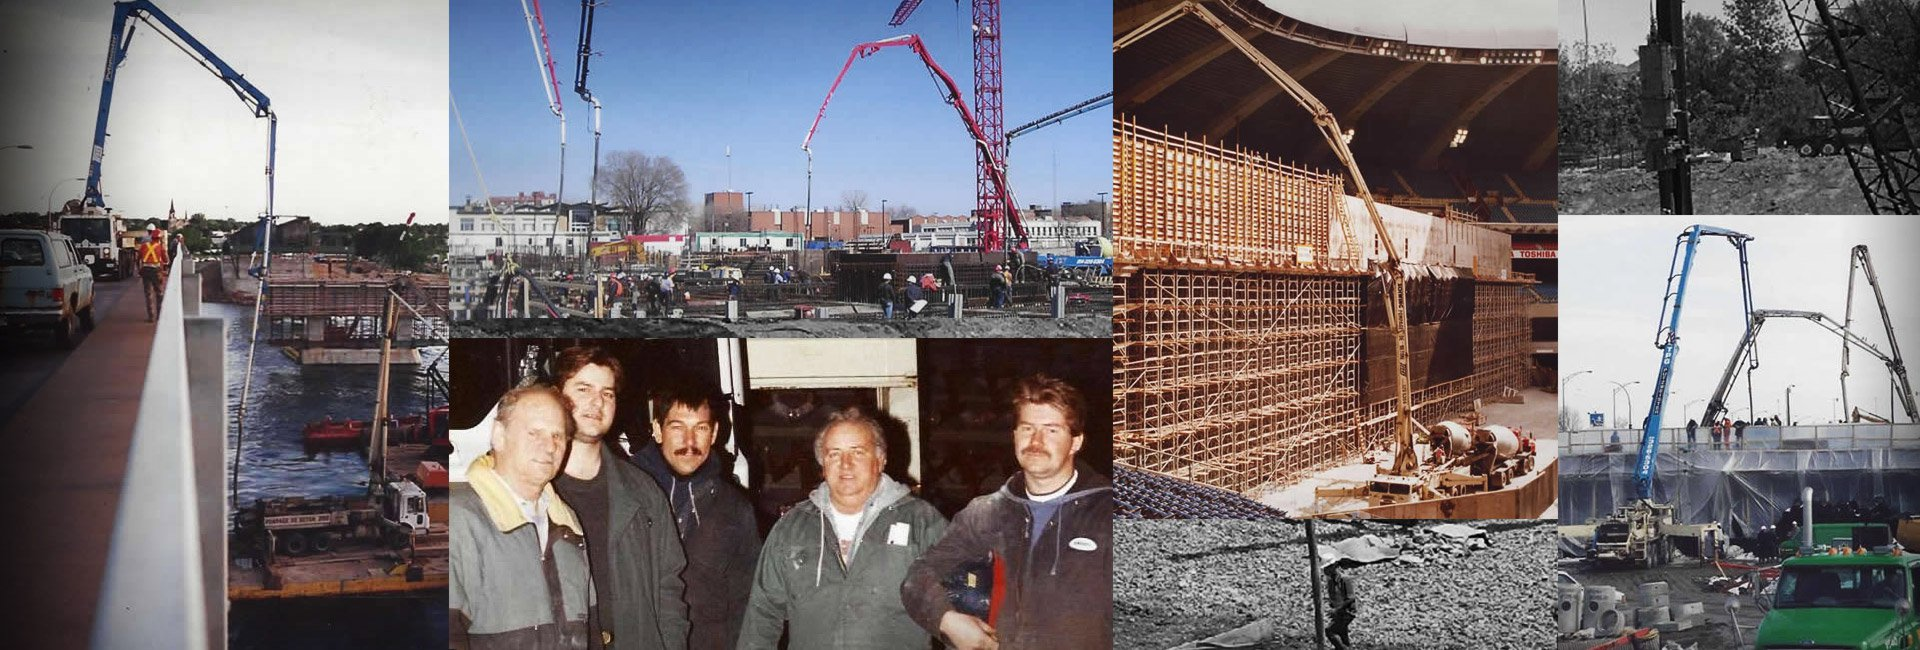 TPG Concrete Pumping: a family story